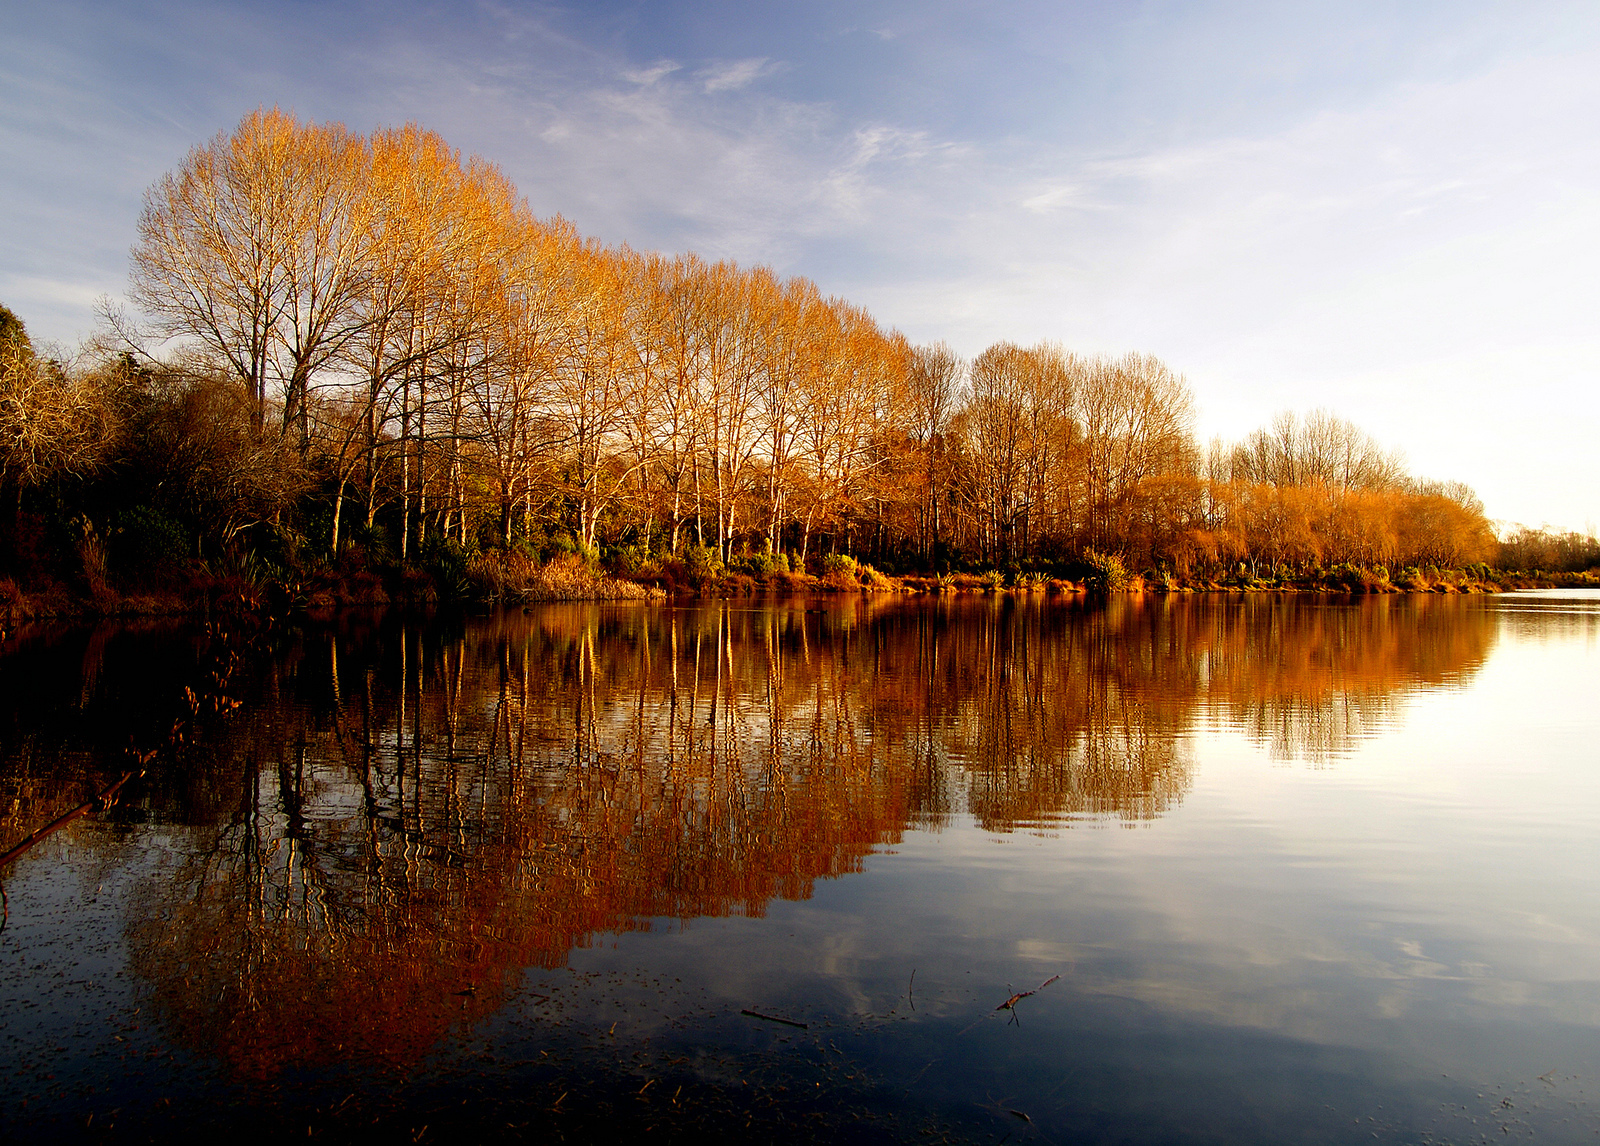 Fall colors reflecting on a lake